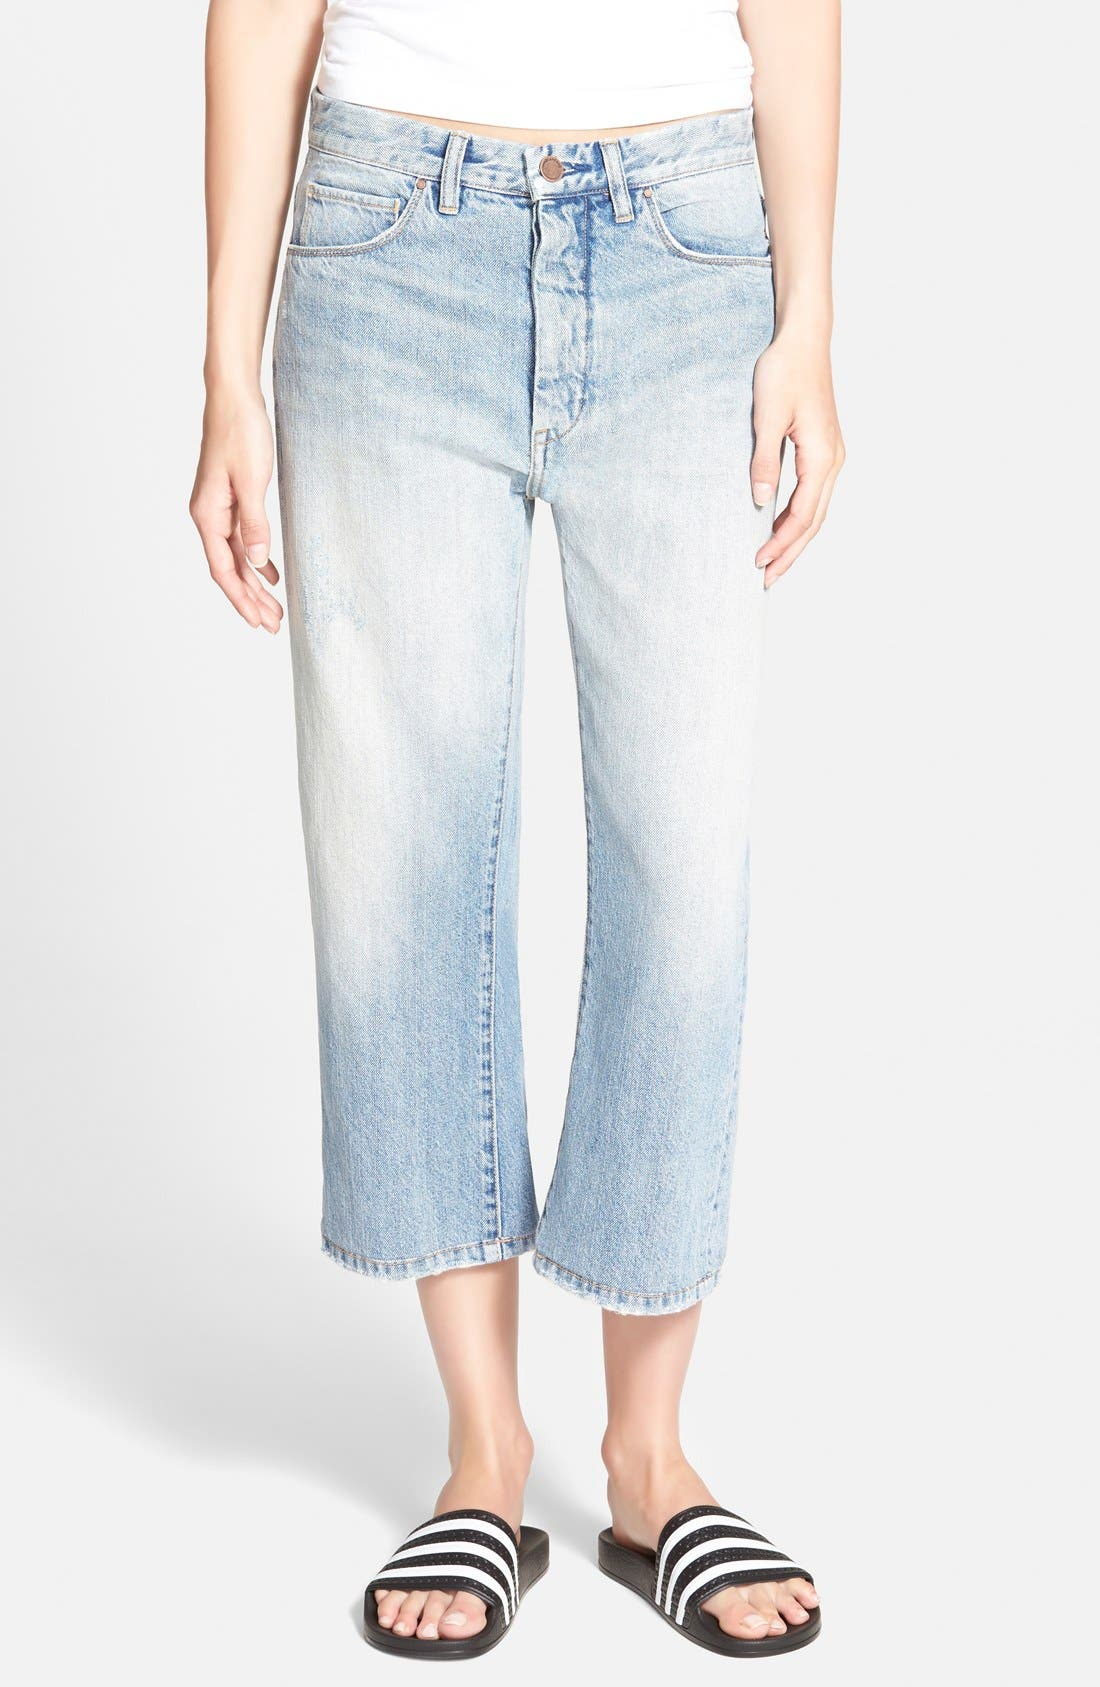 Alternate Image 1 Selected - BLANKNYC 'My Sugar Daddy' Crop Boyfriend Jeans (Blue)